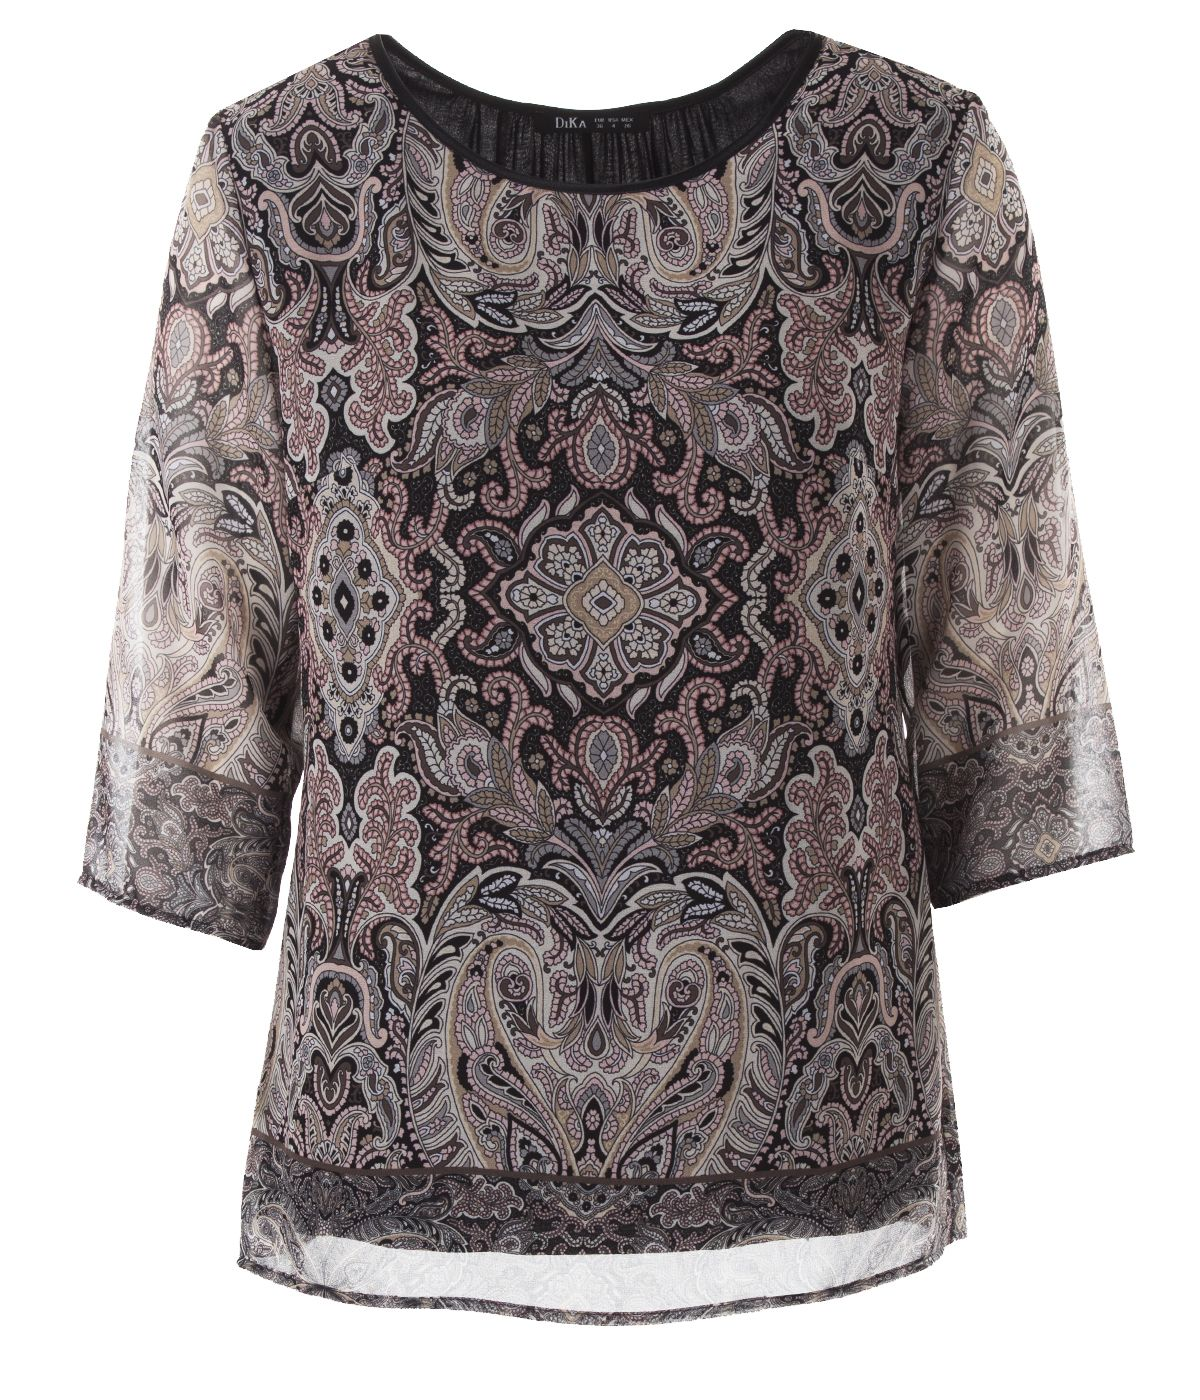 Blouse with 3/4 sleeves and paisley print